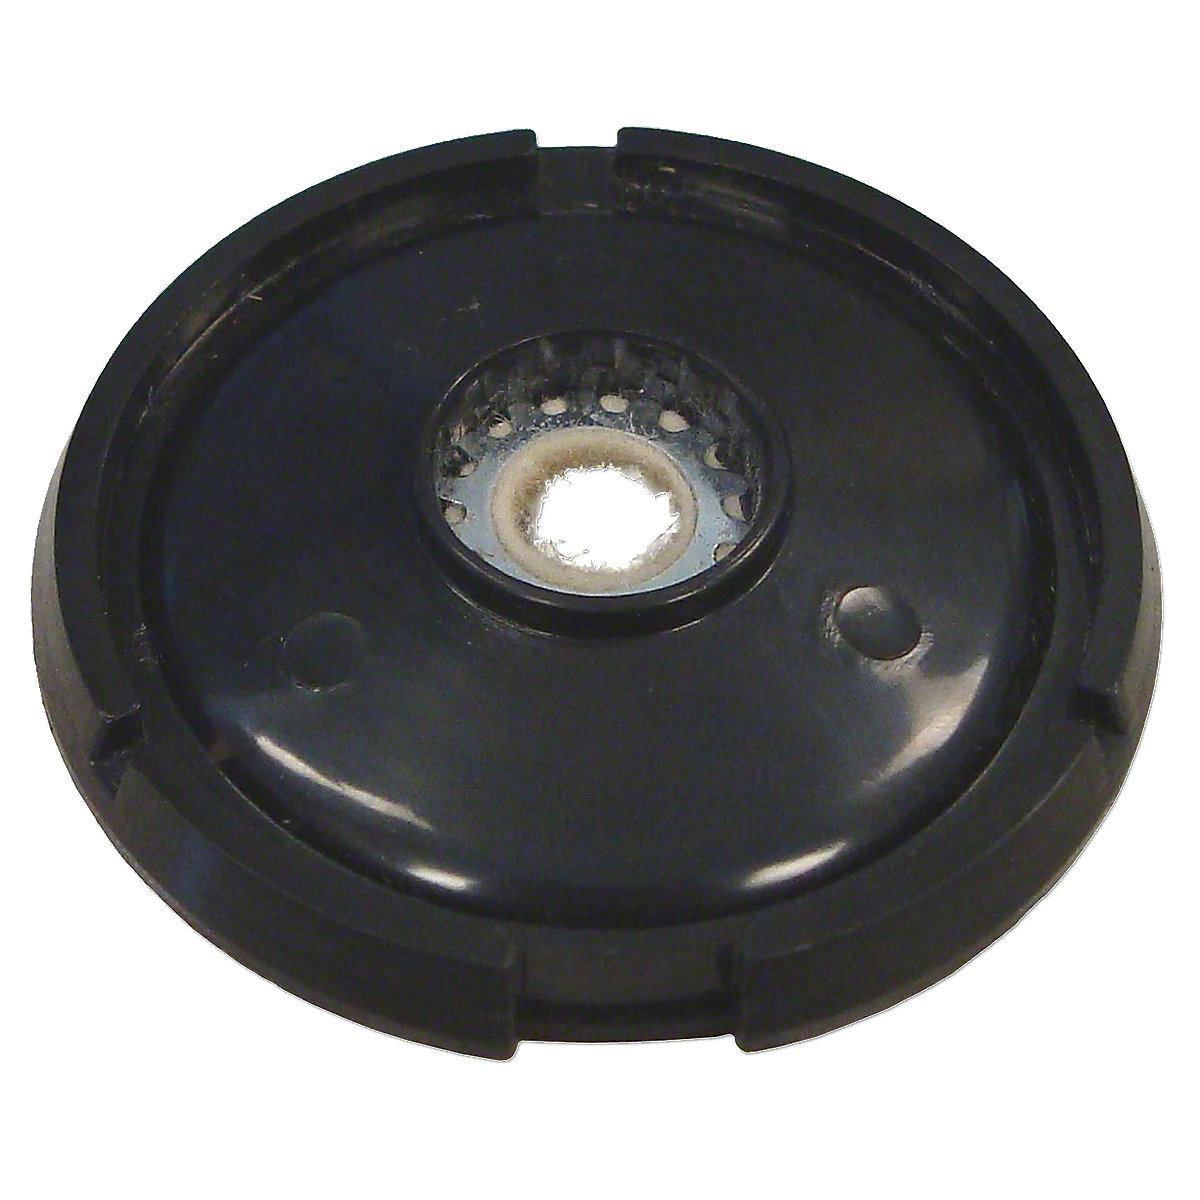 Distributor Dust Cover With Felt Washer For Massey Harris: 50.